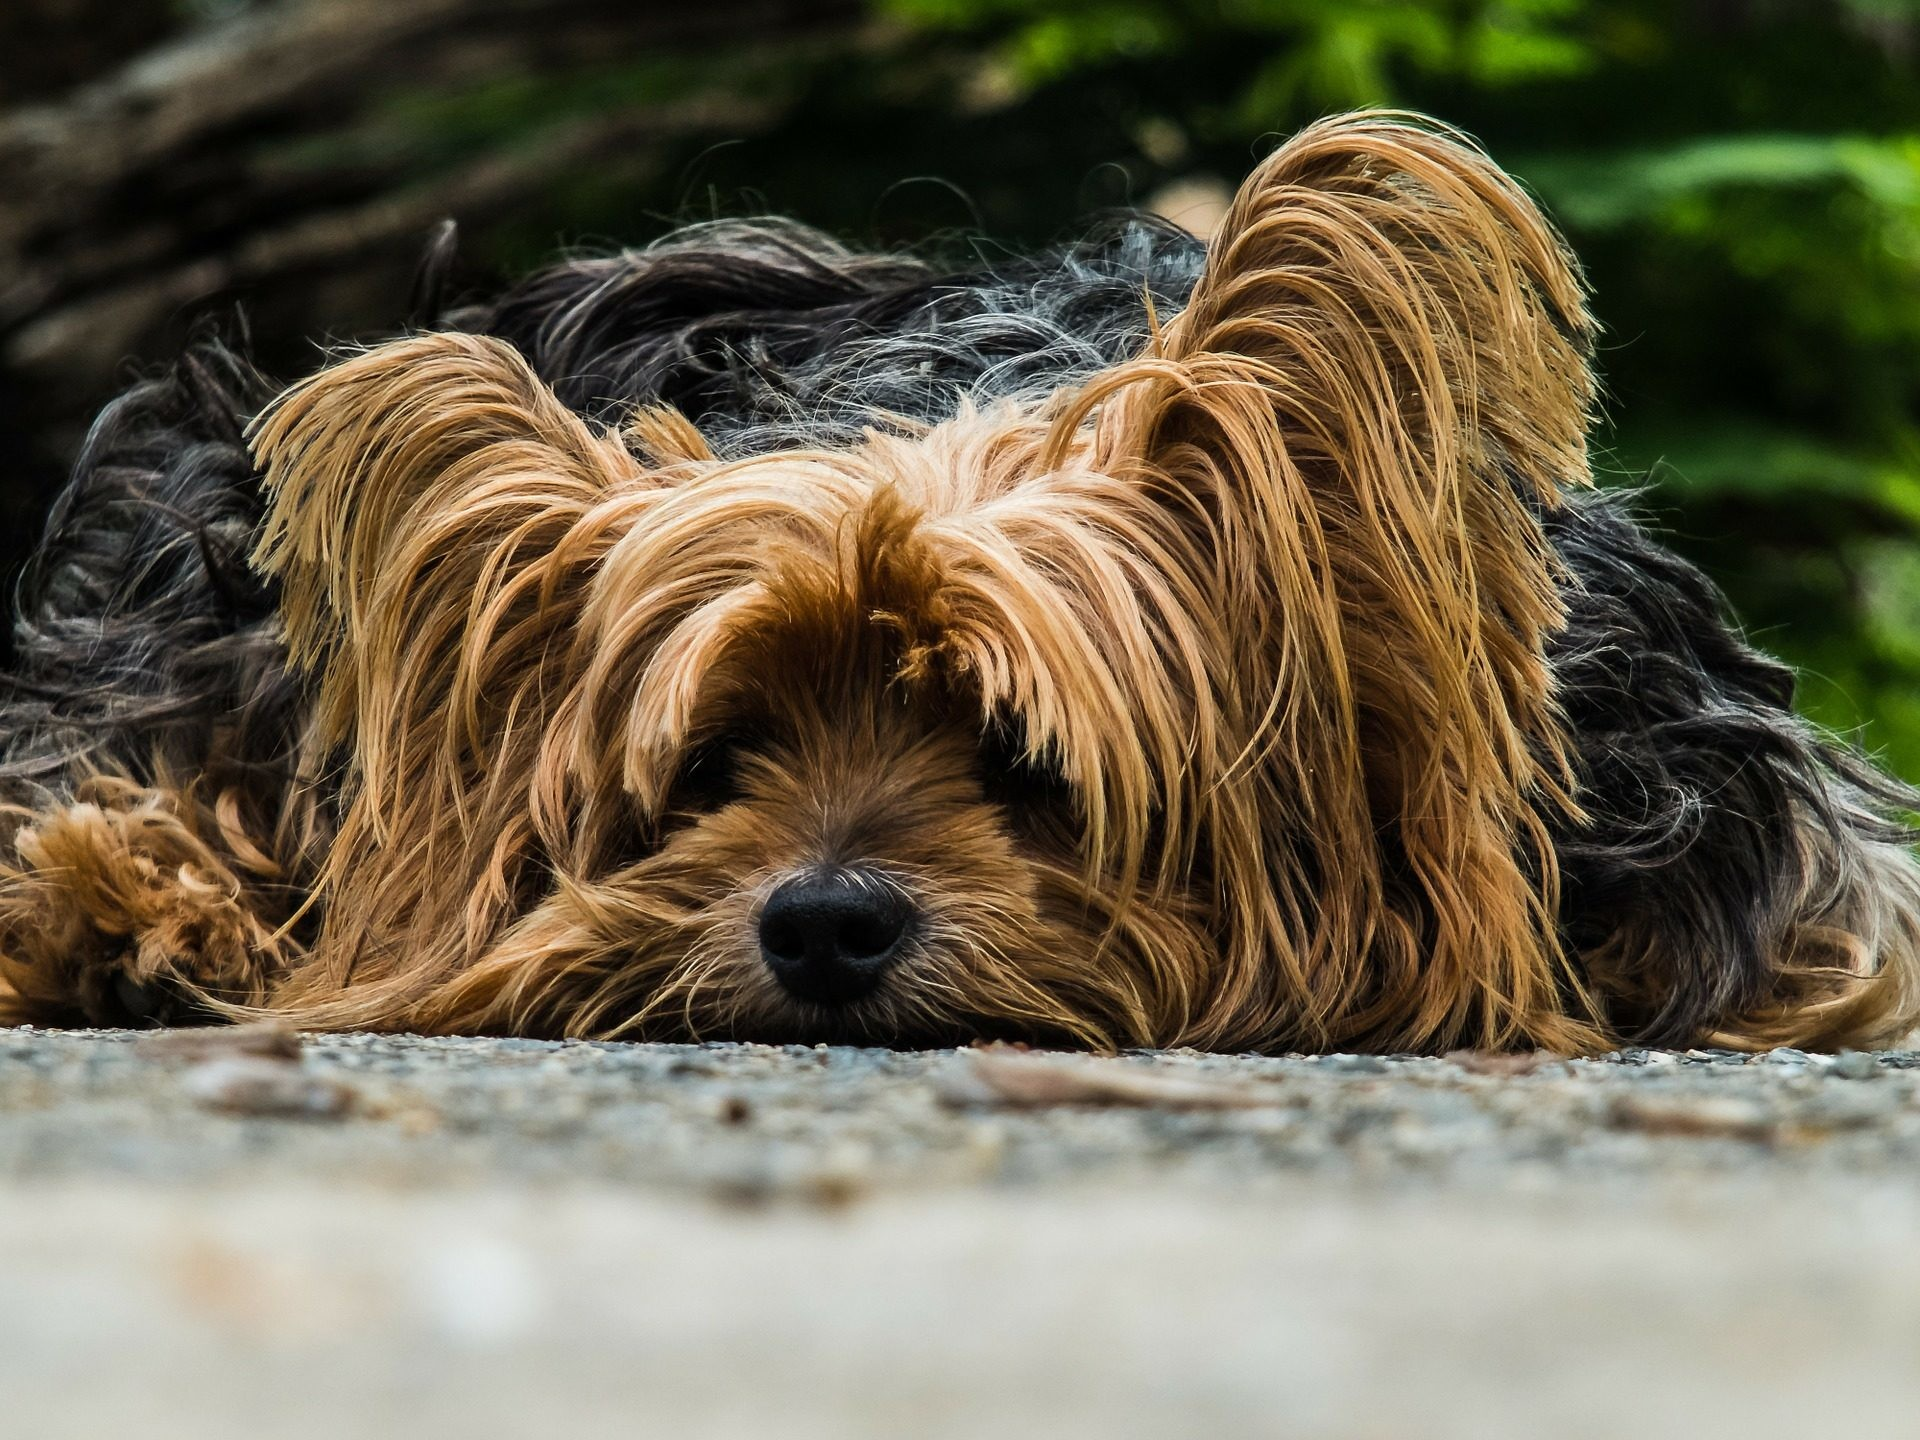 1920x1440 Explore Yorkie Dogs, Cute Dogs, and more!